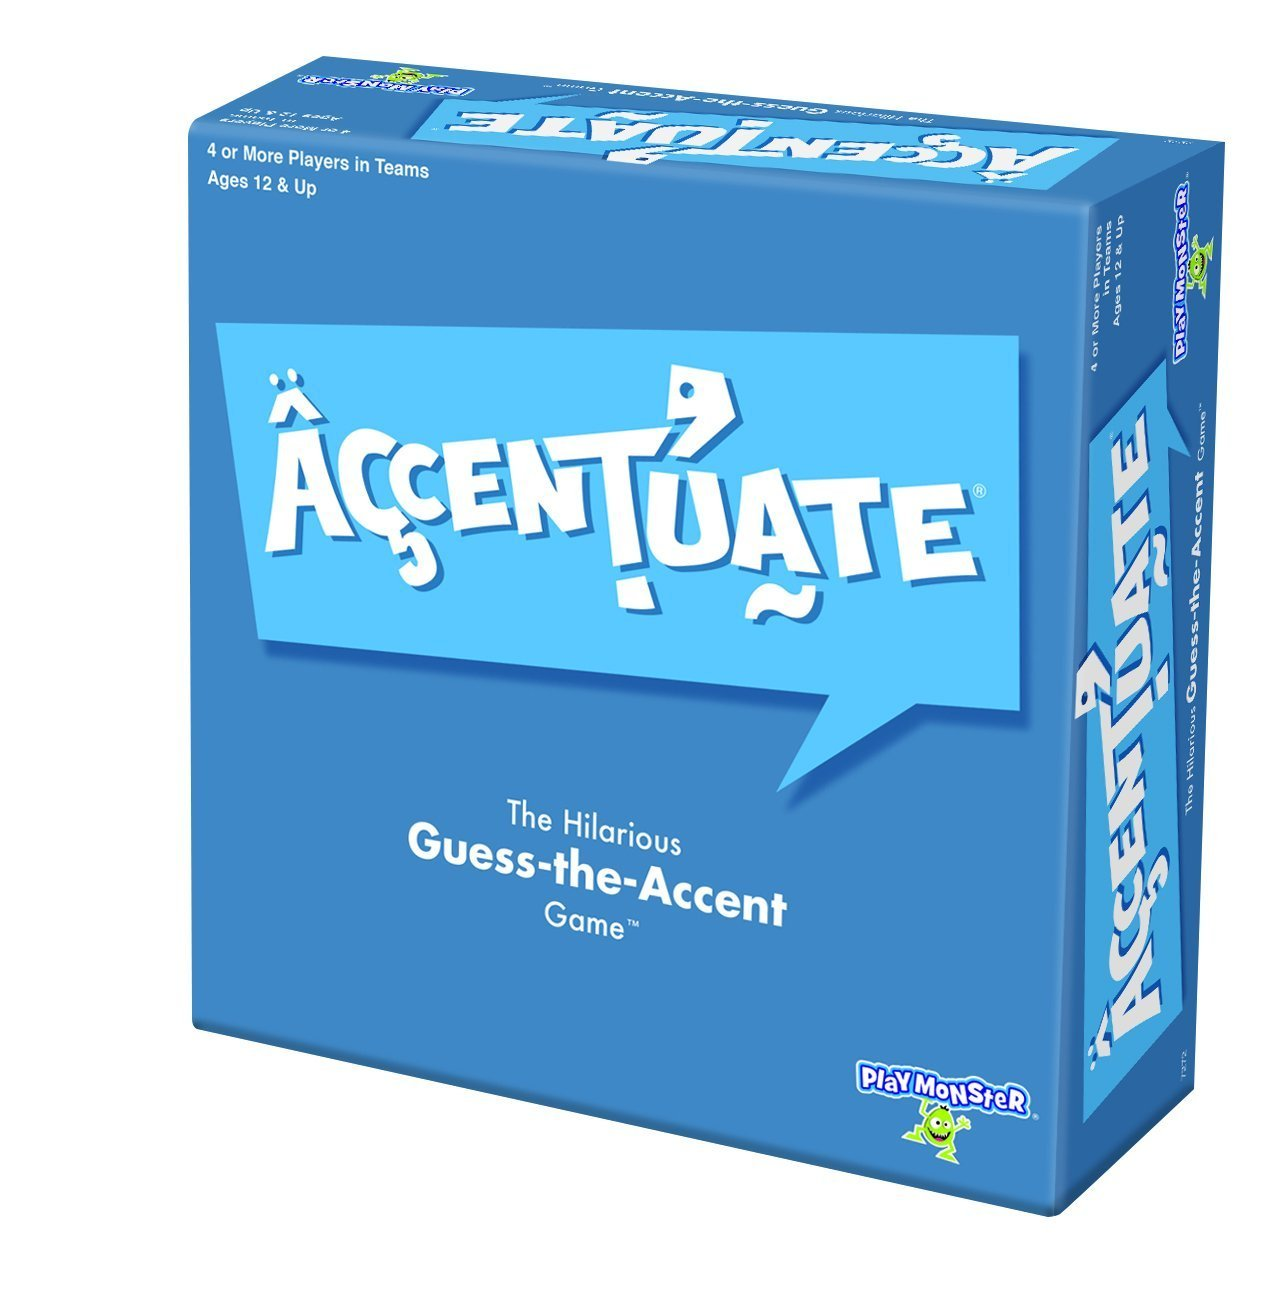 Accentuate Guess- the -Accent